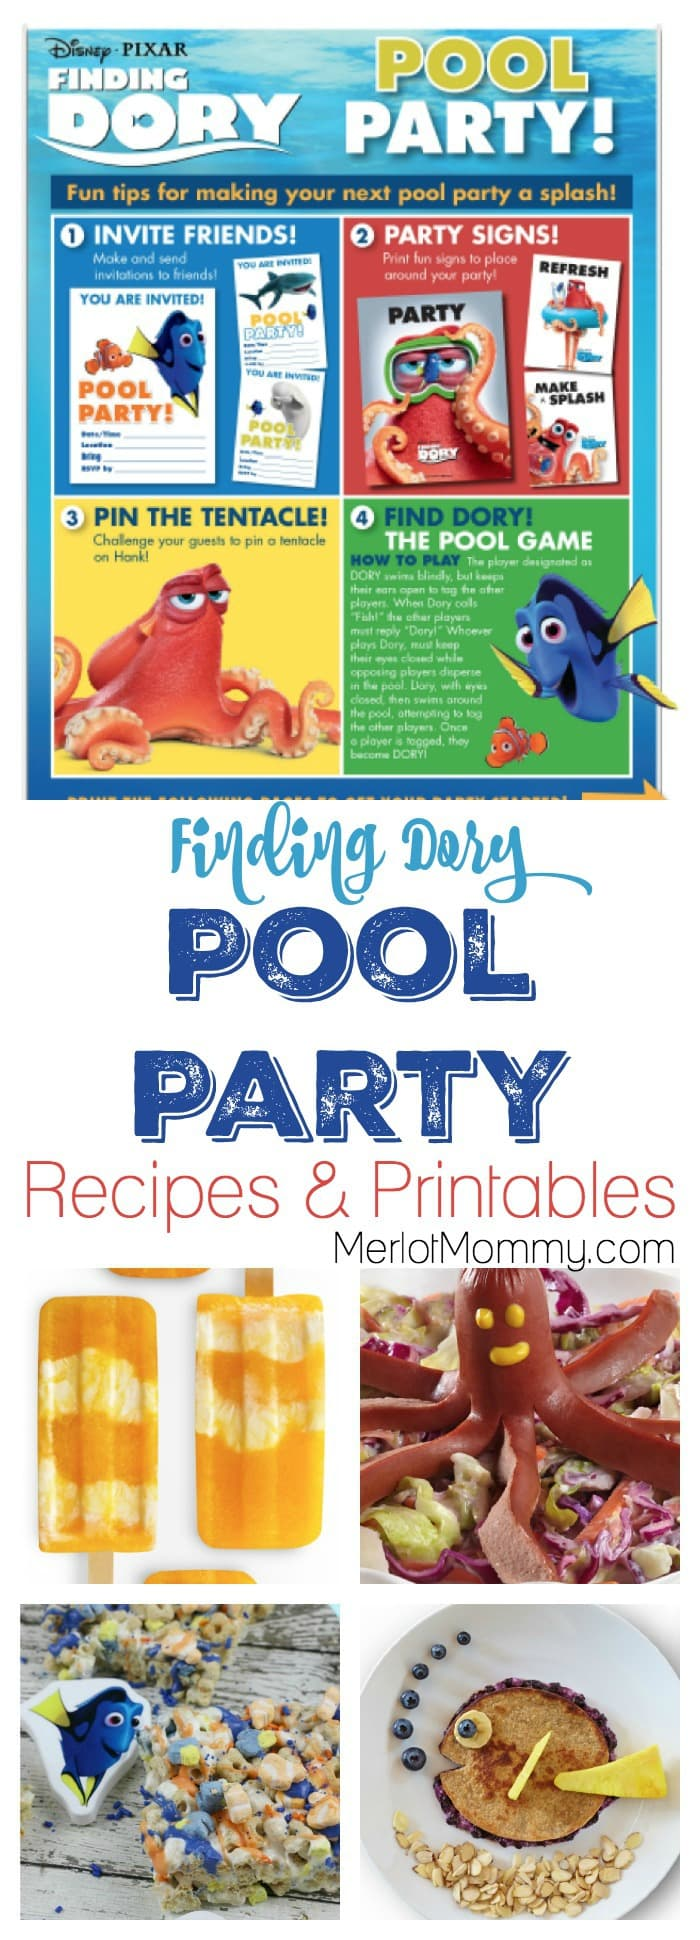 Finding Dory Recipes + Pool Party